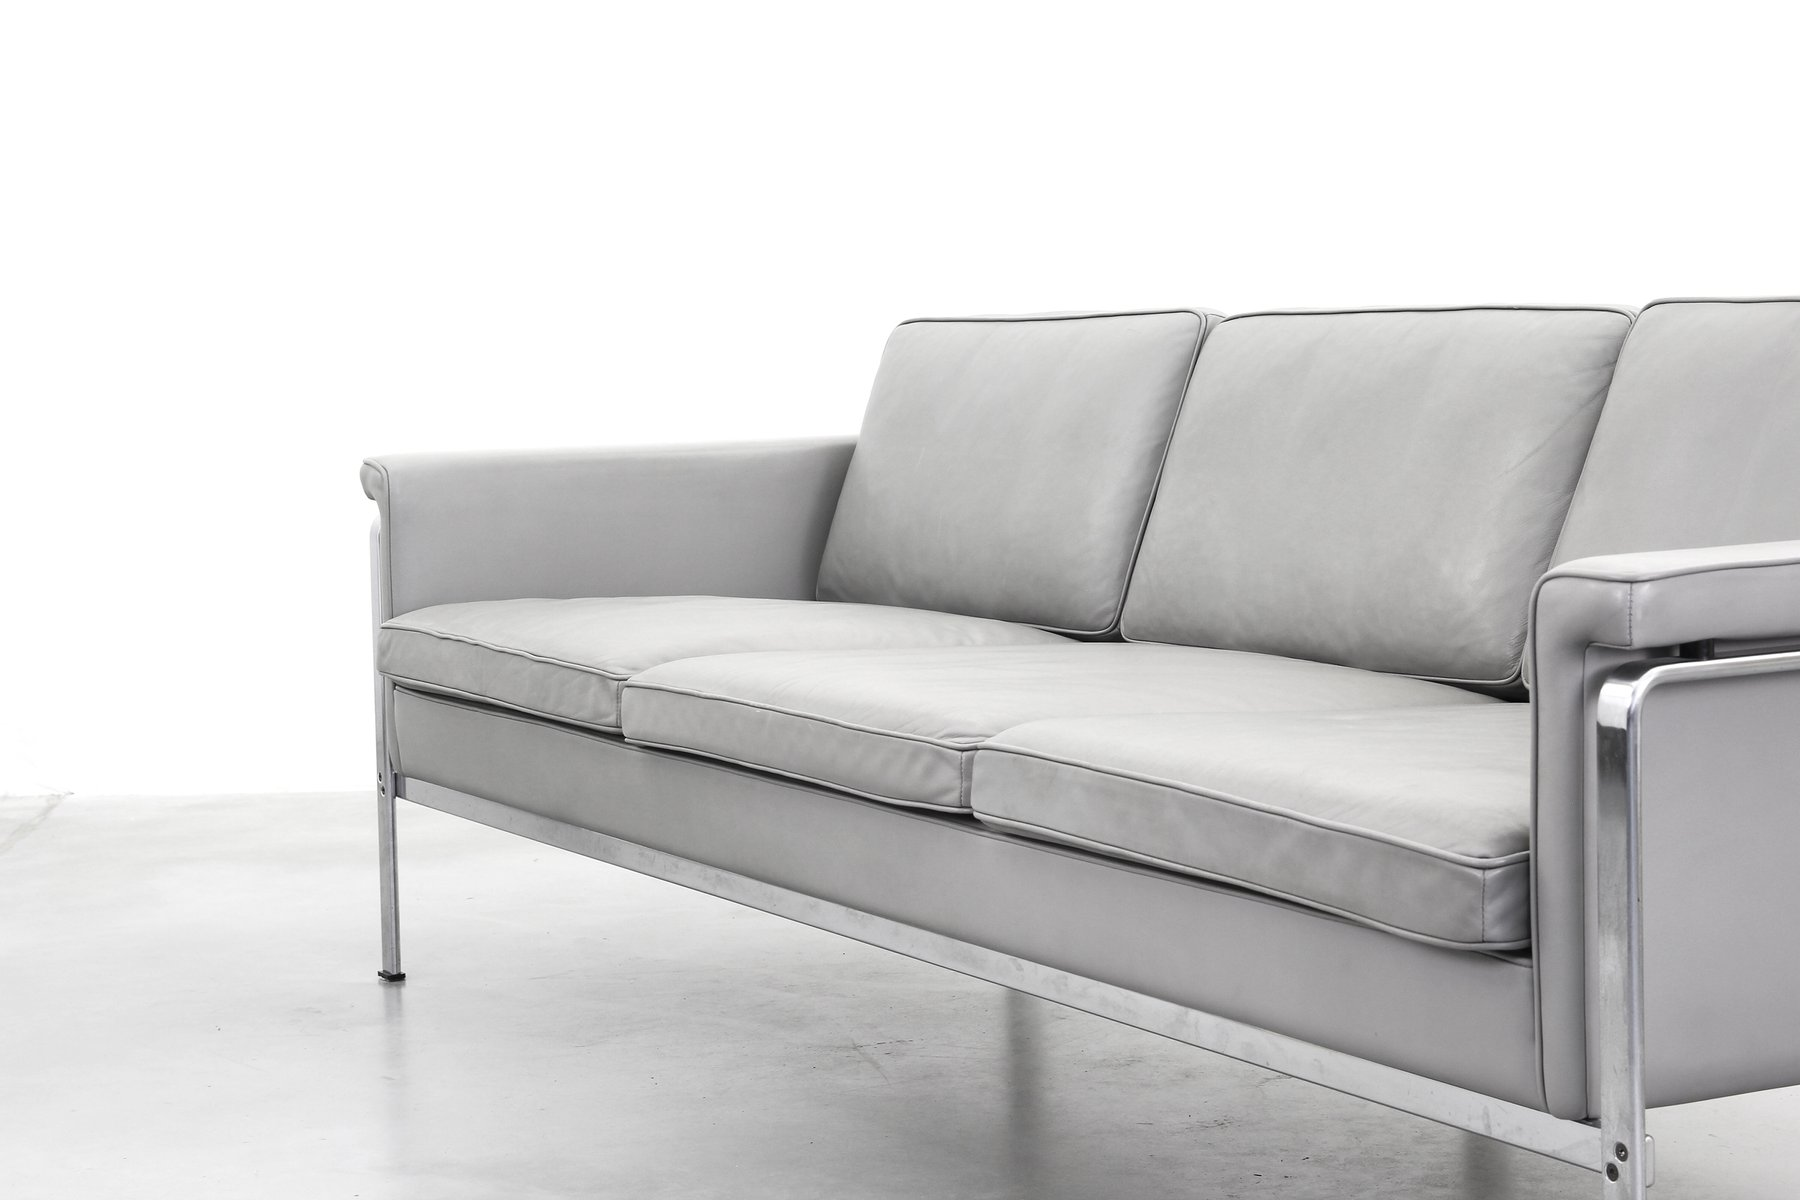 Grey sofa by horst br ning for kill international 1970s for Gray sofas for sale